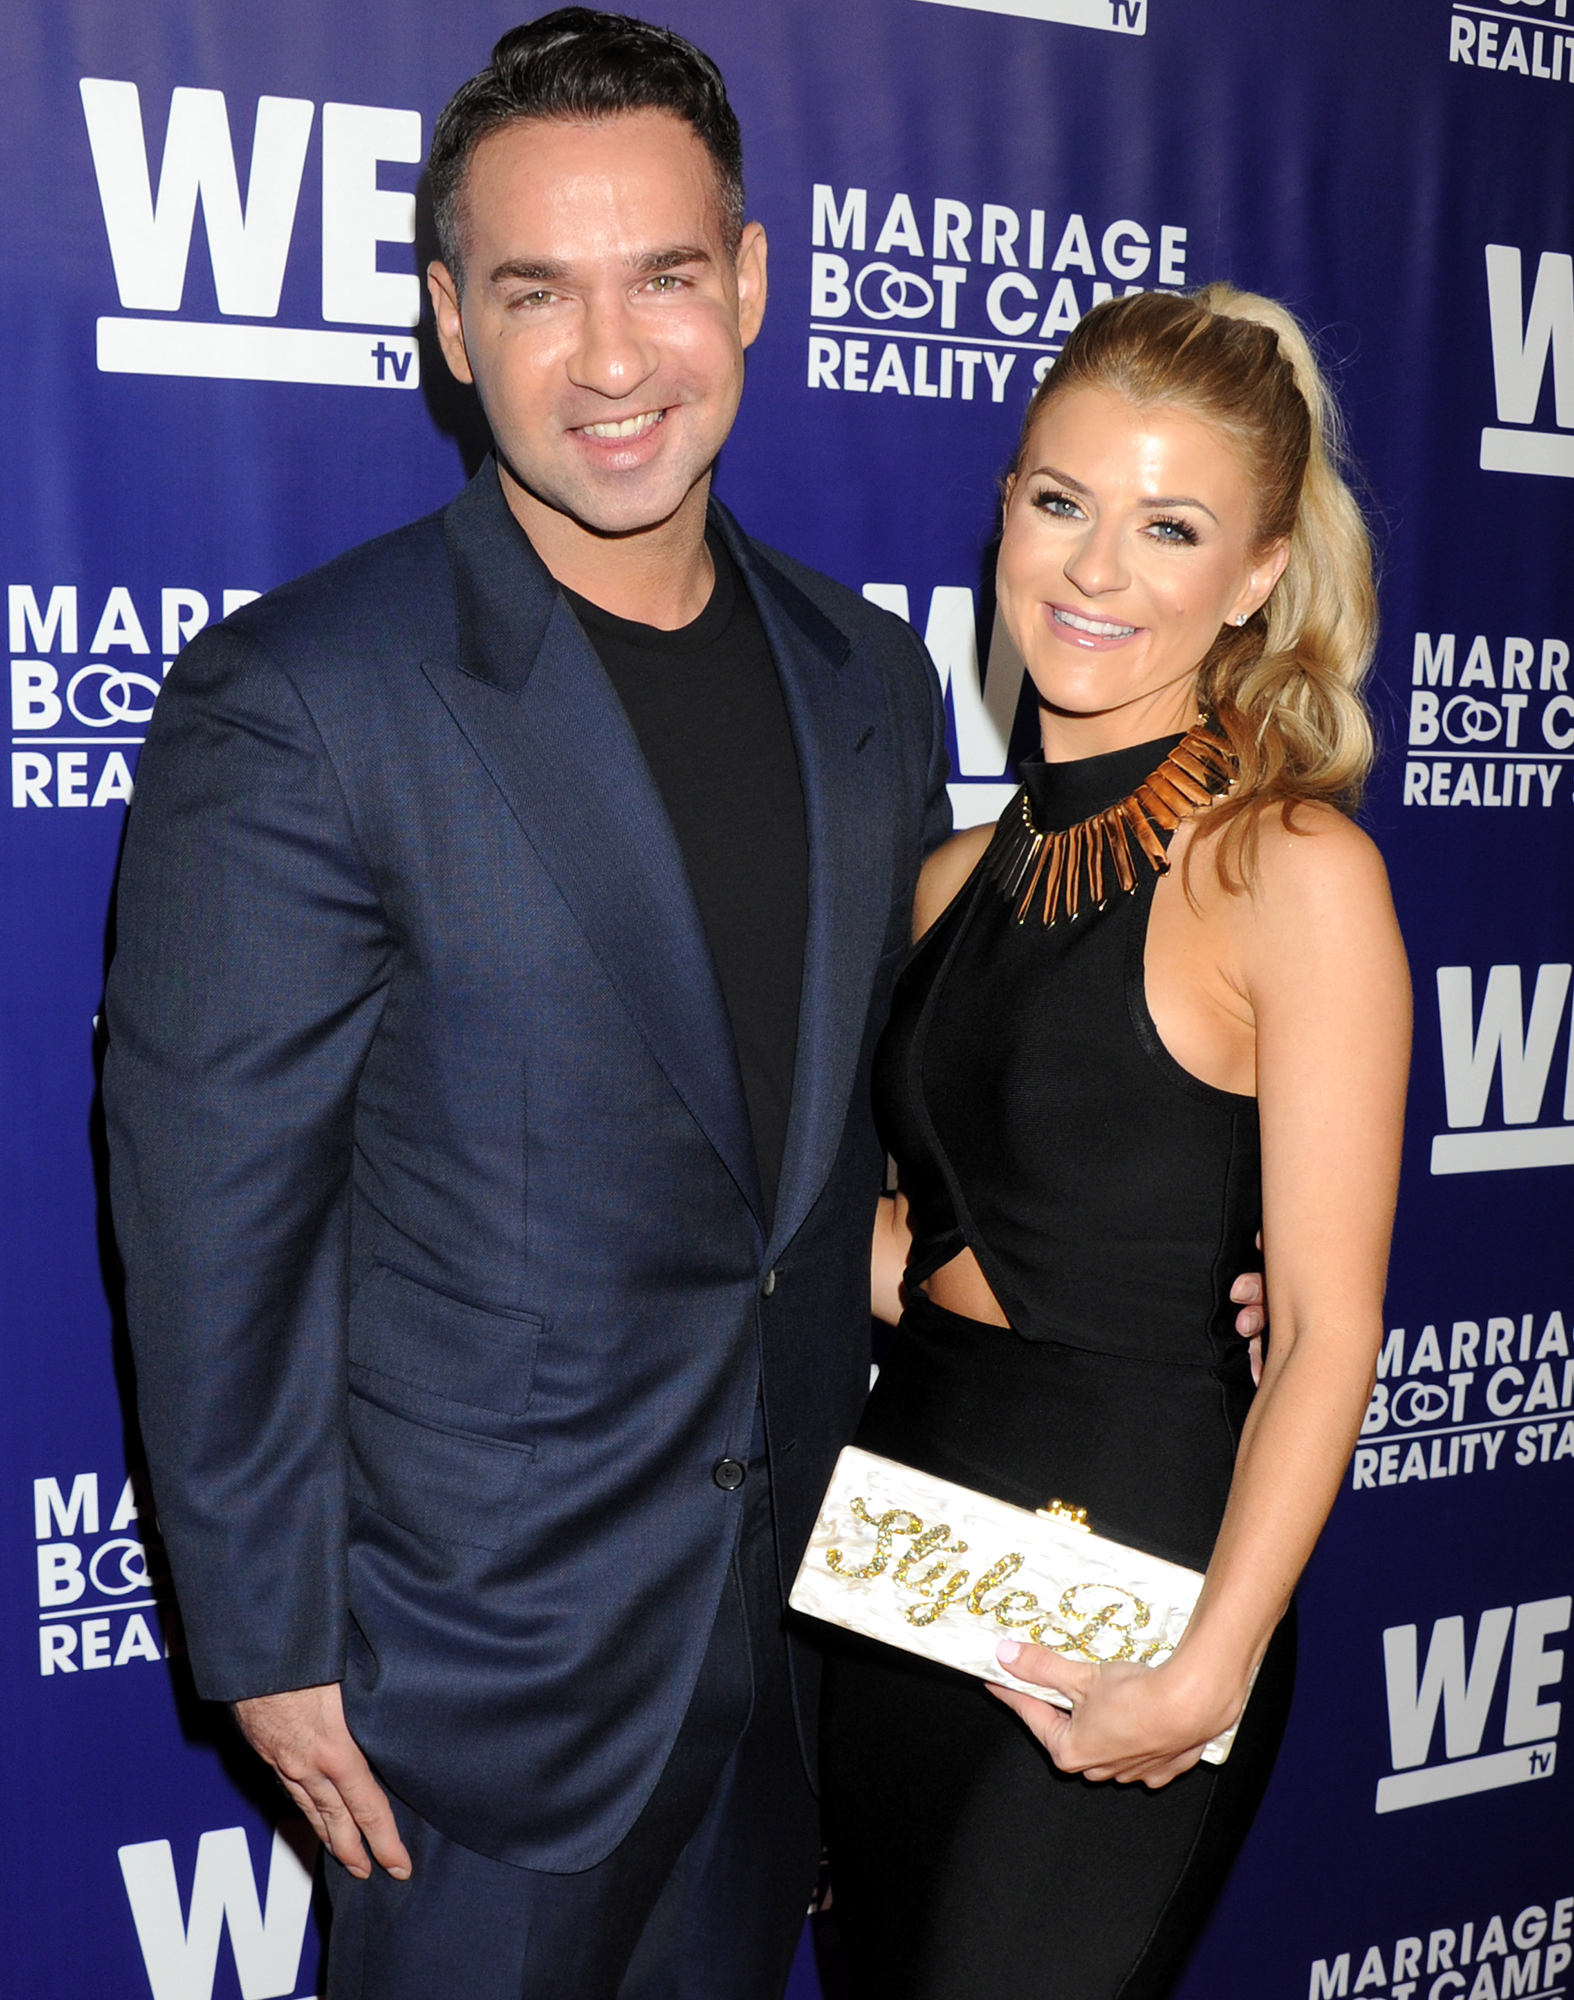 'Marriage Boot Camp Reality Stars' TV show premiere party, Los Angeles, America - 28 May 2015